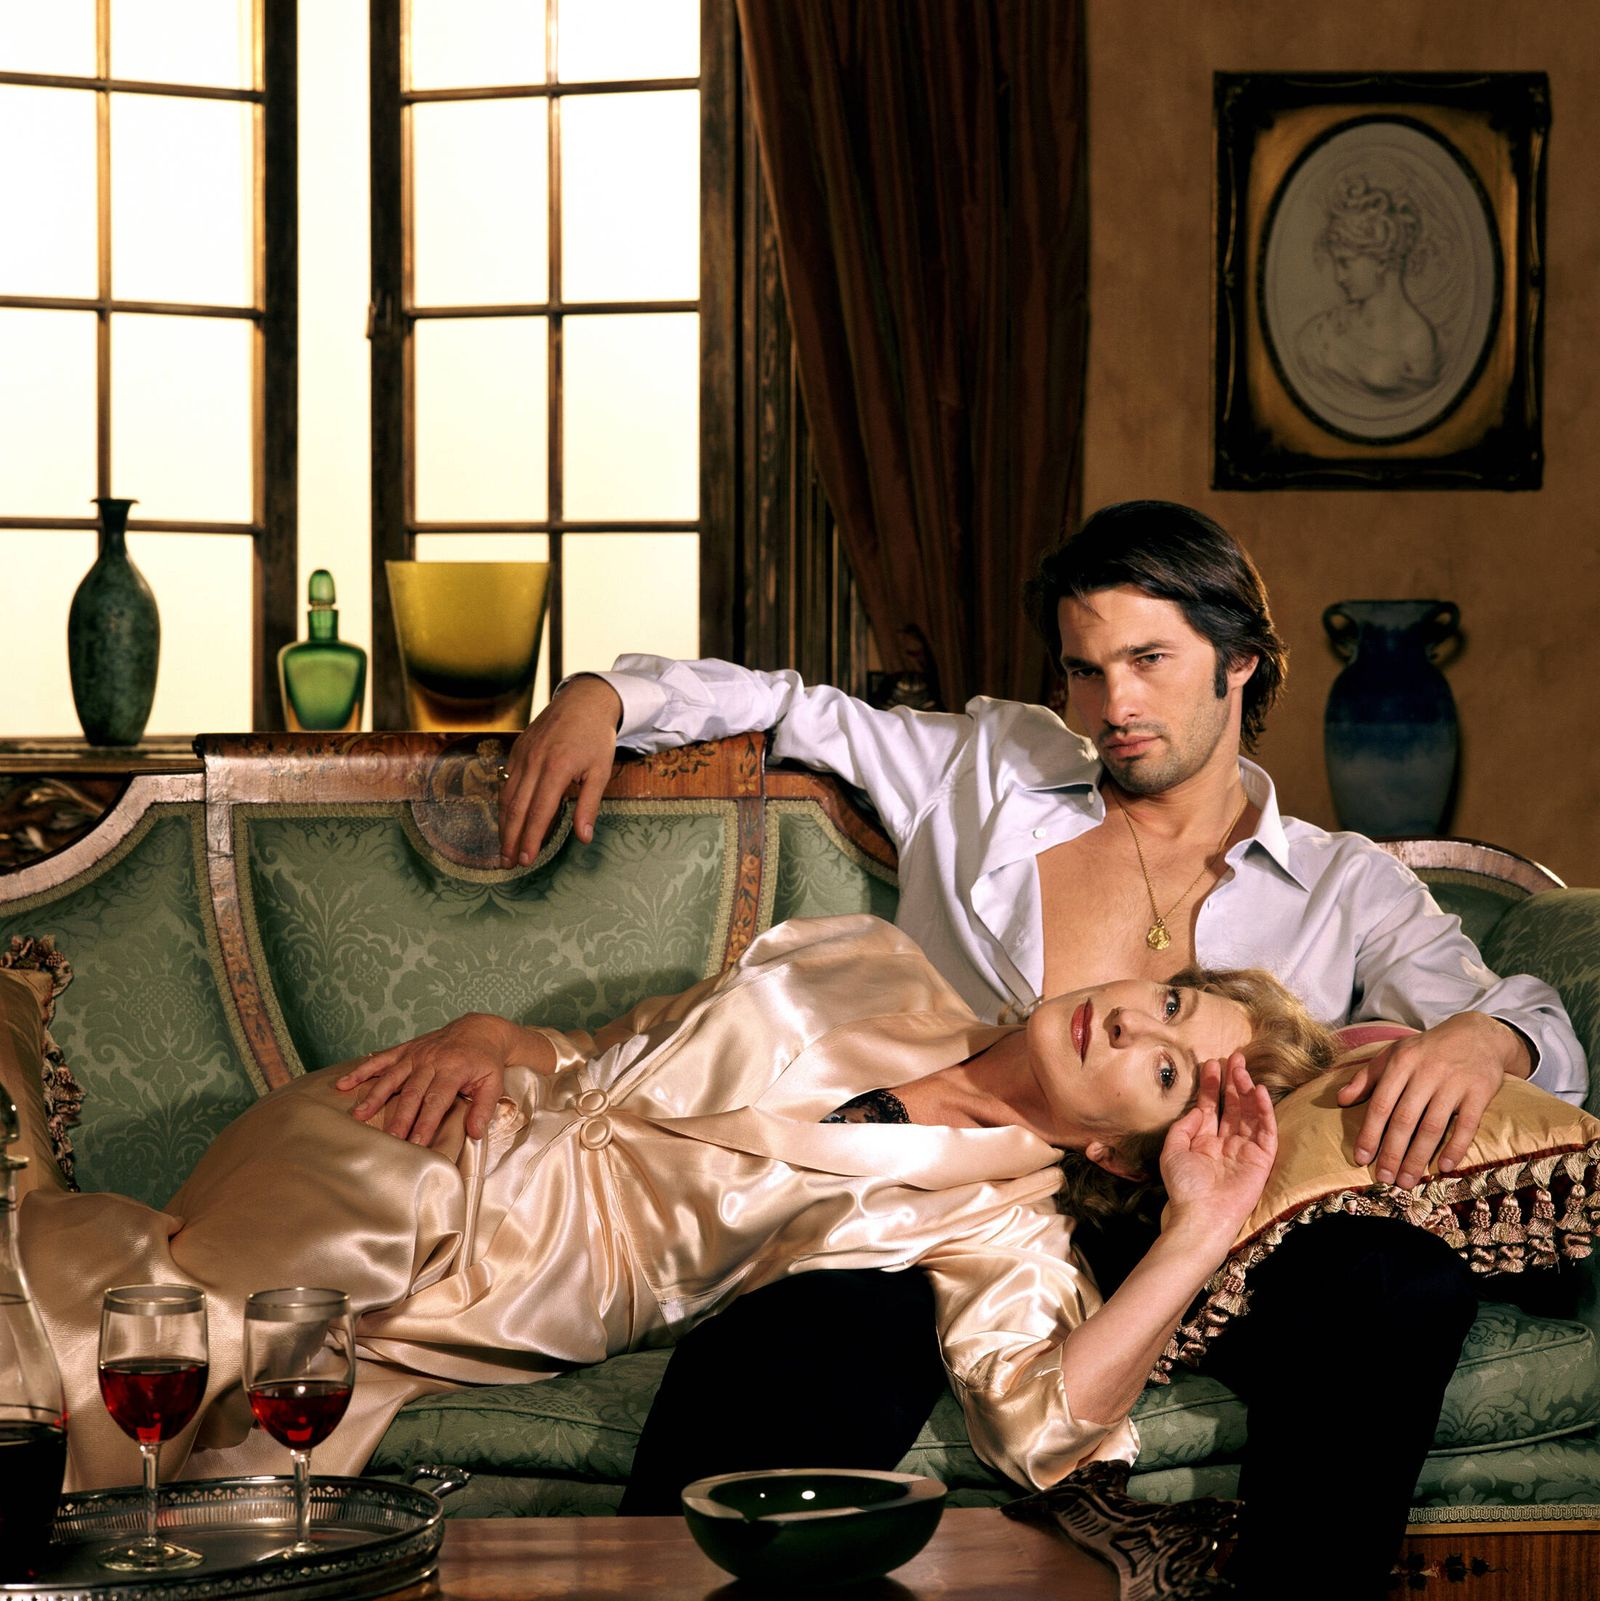 Helen Mirren & Olivier Martinez Characters: Karen Stone & Paolo di Lio Film: The Roman Spring Of Mrs. Stone (2003) Direc